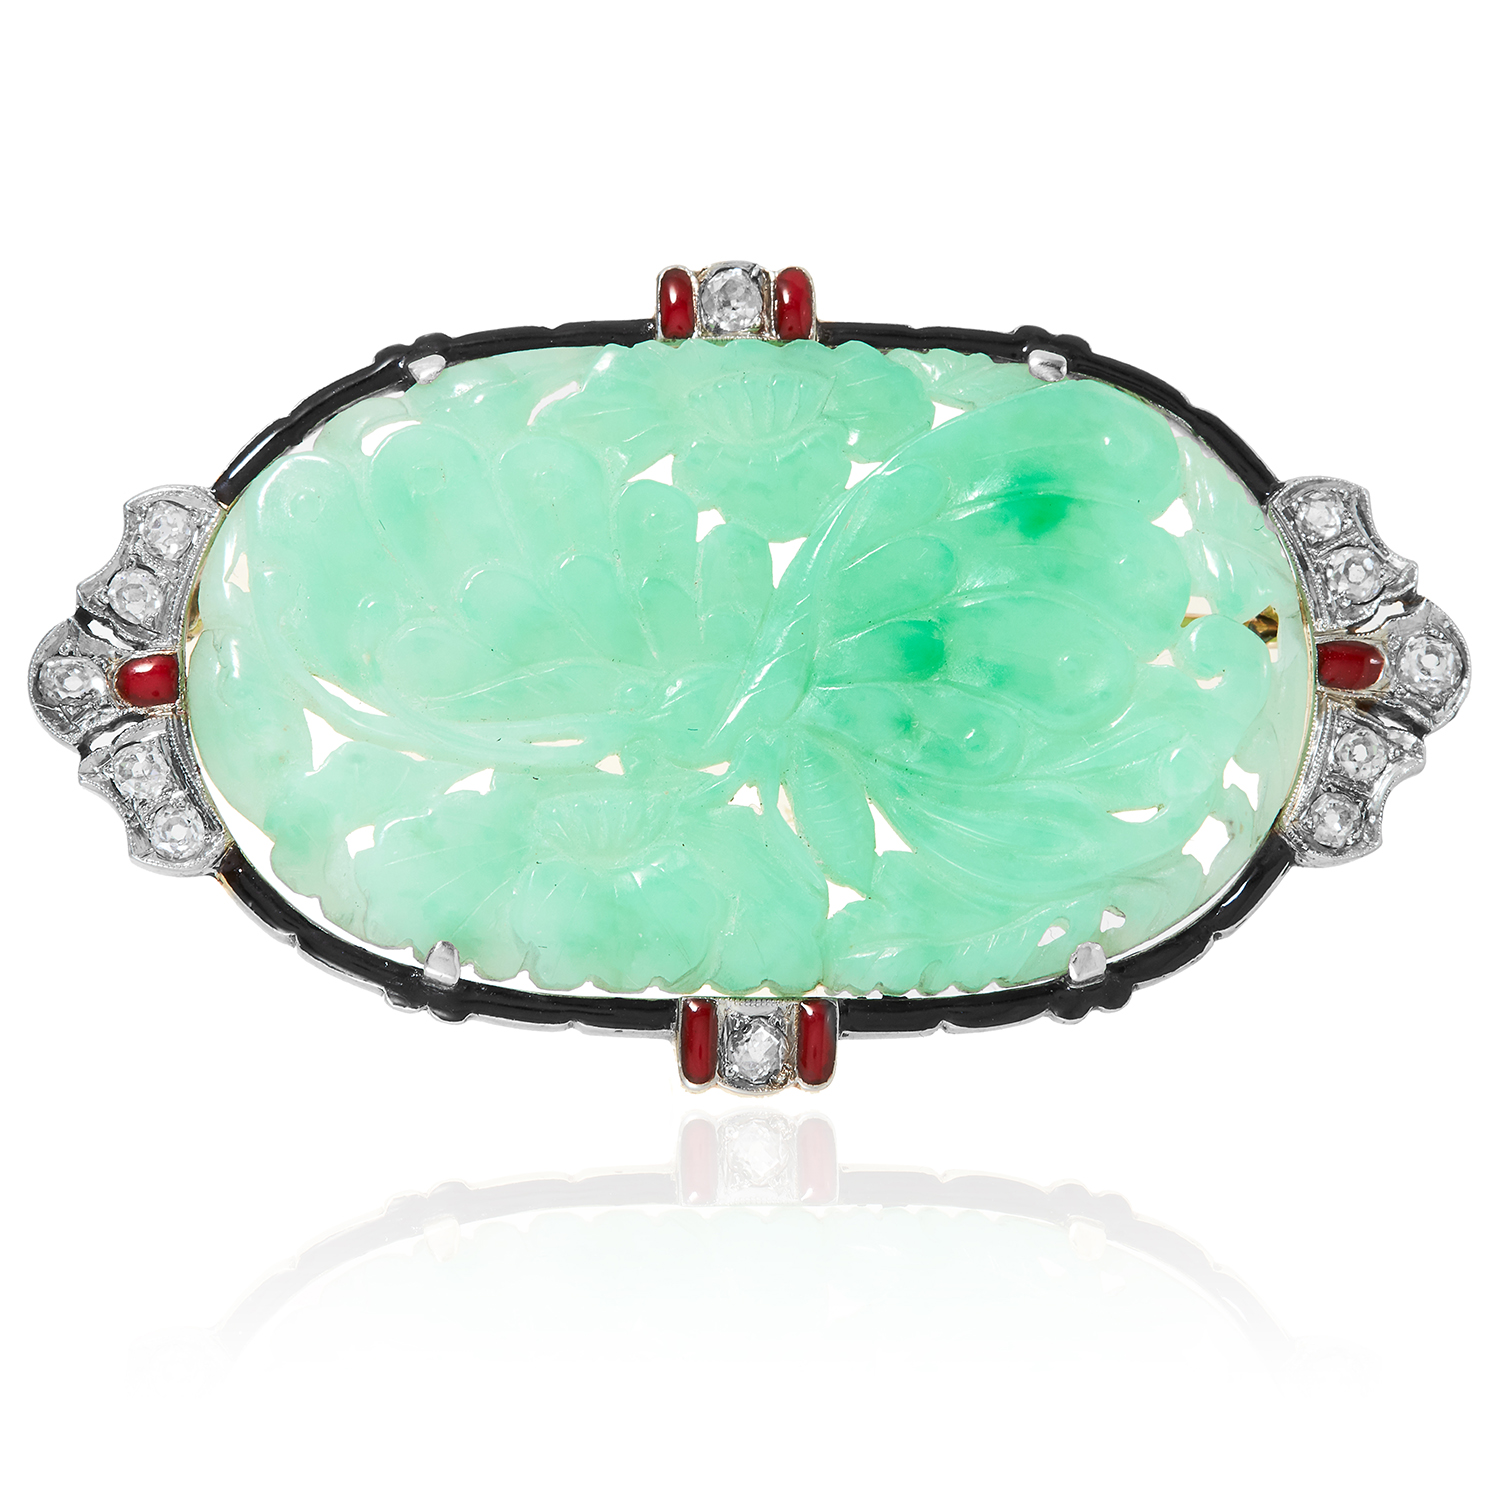 AN ART DECO JADEITE JADE, DIAMOND AND ENAMEL BROOCH in yellow gold, set with a carved jade plaque,